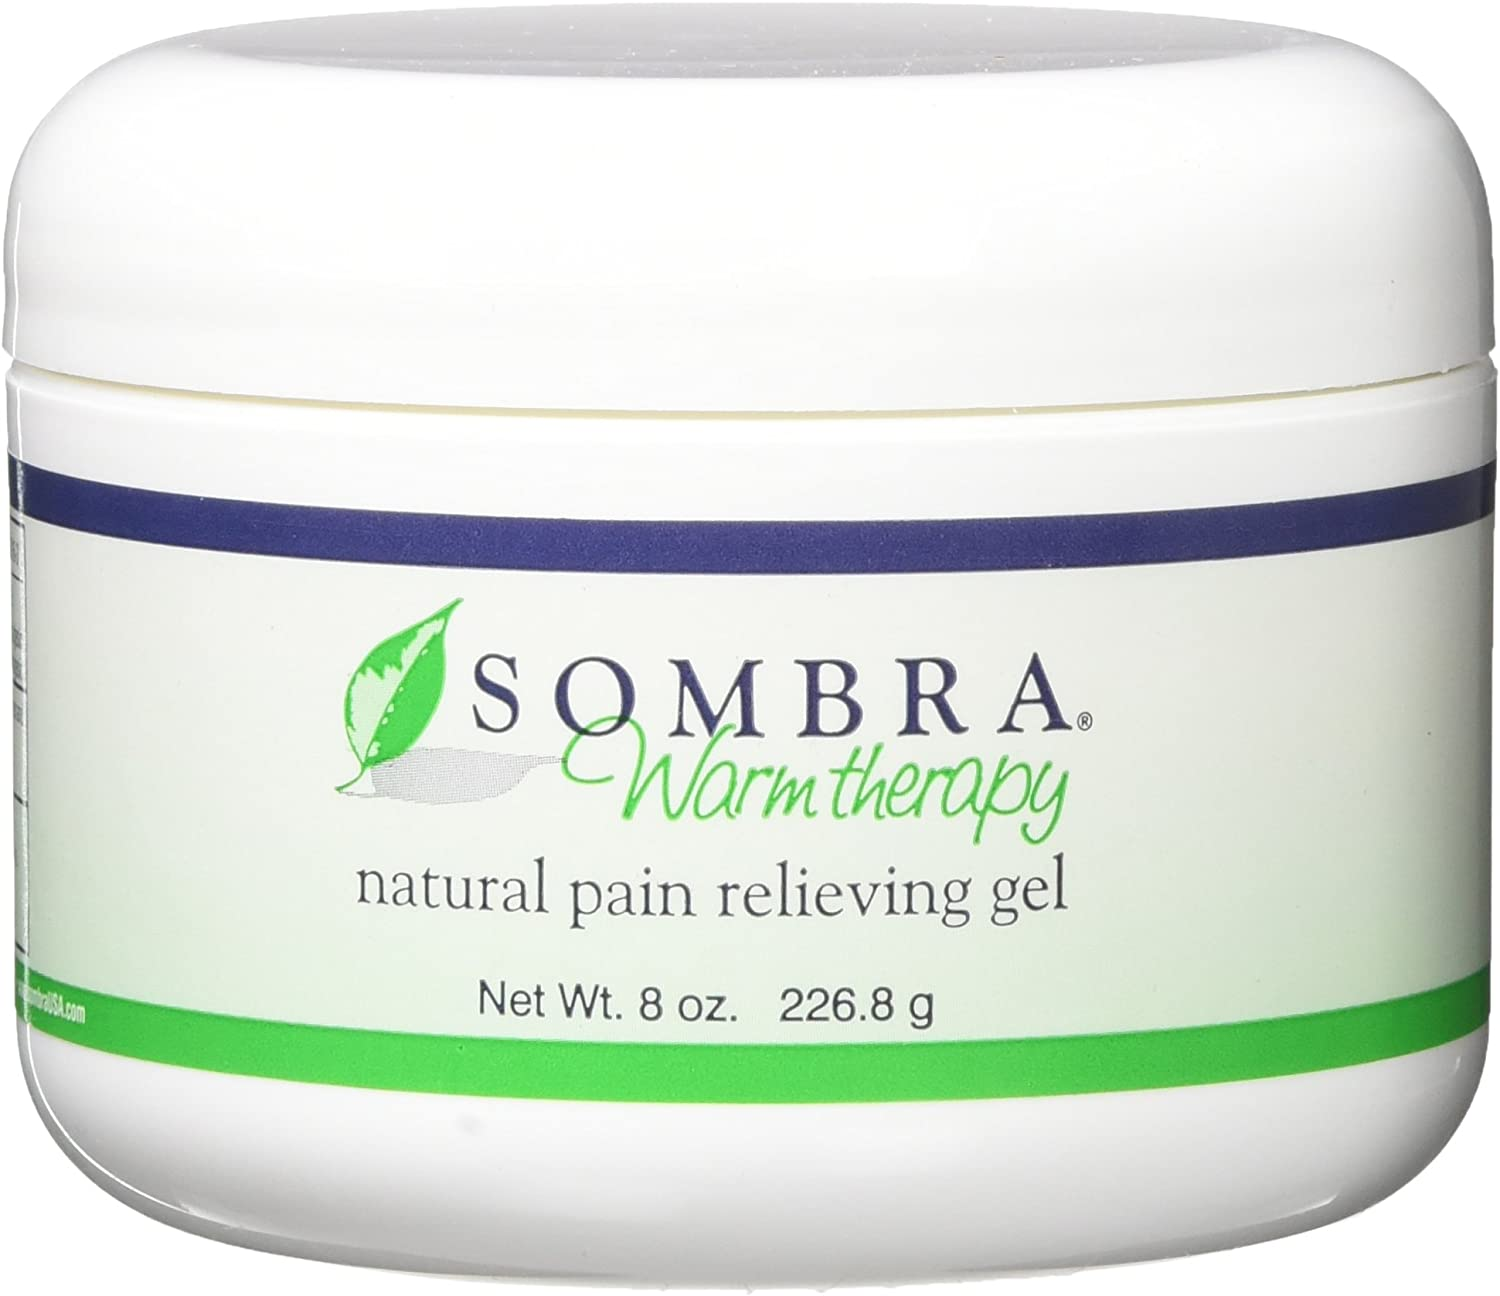 Sombra Warm Therapy Pain Relieving Gel, 2 Count